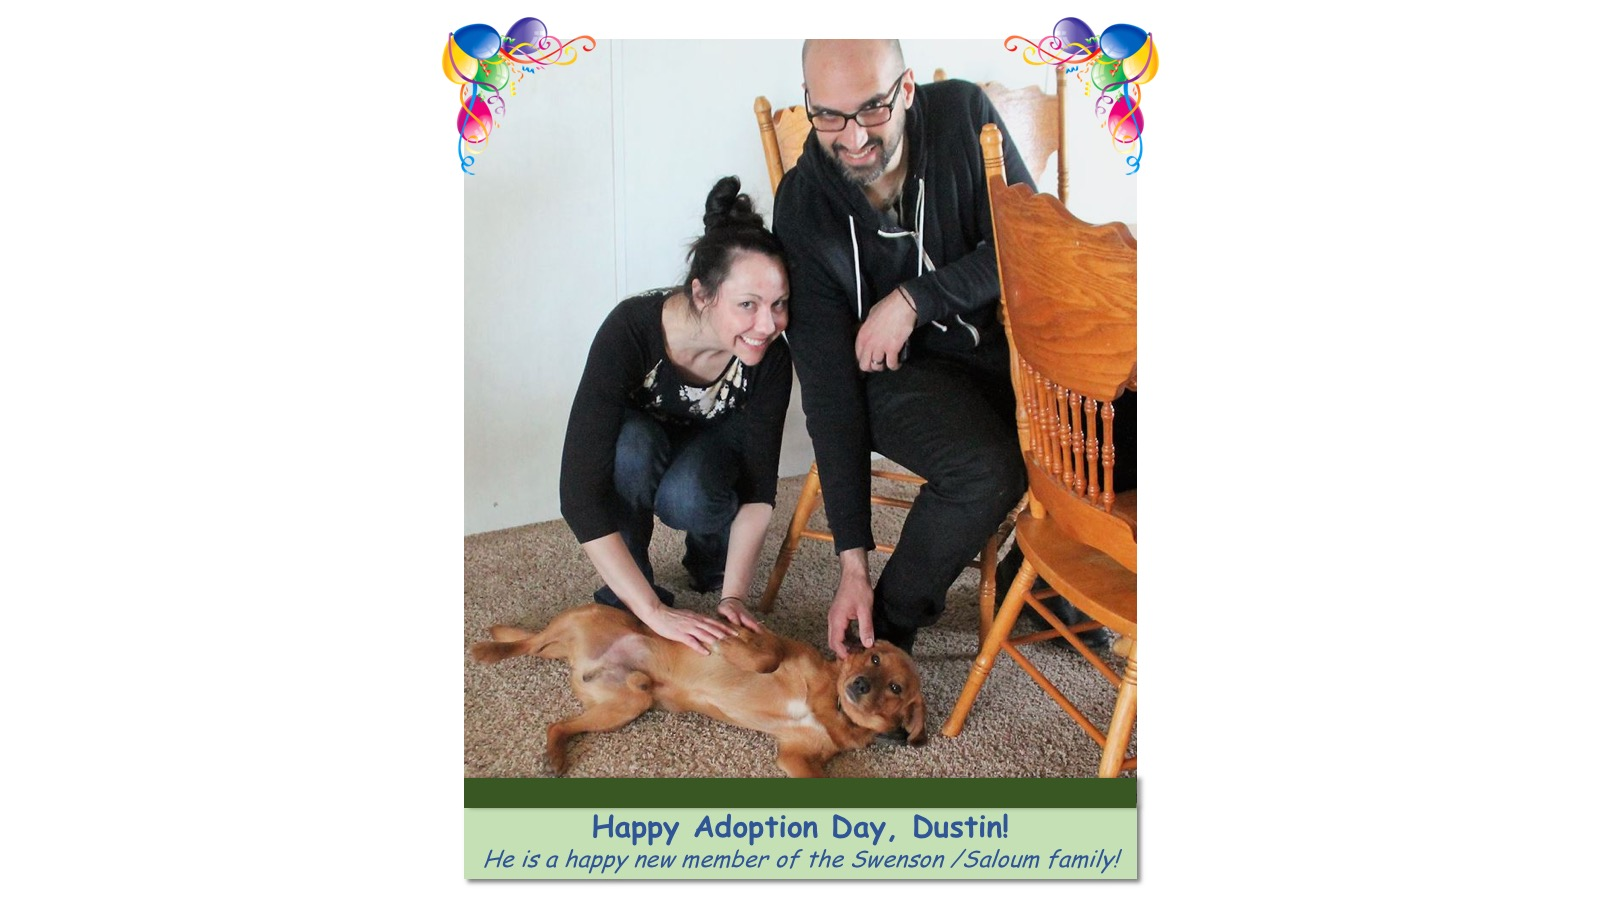 Dustin_Adoption_Photo55045.jpg